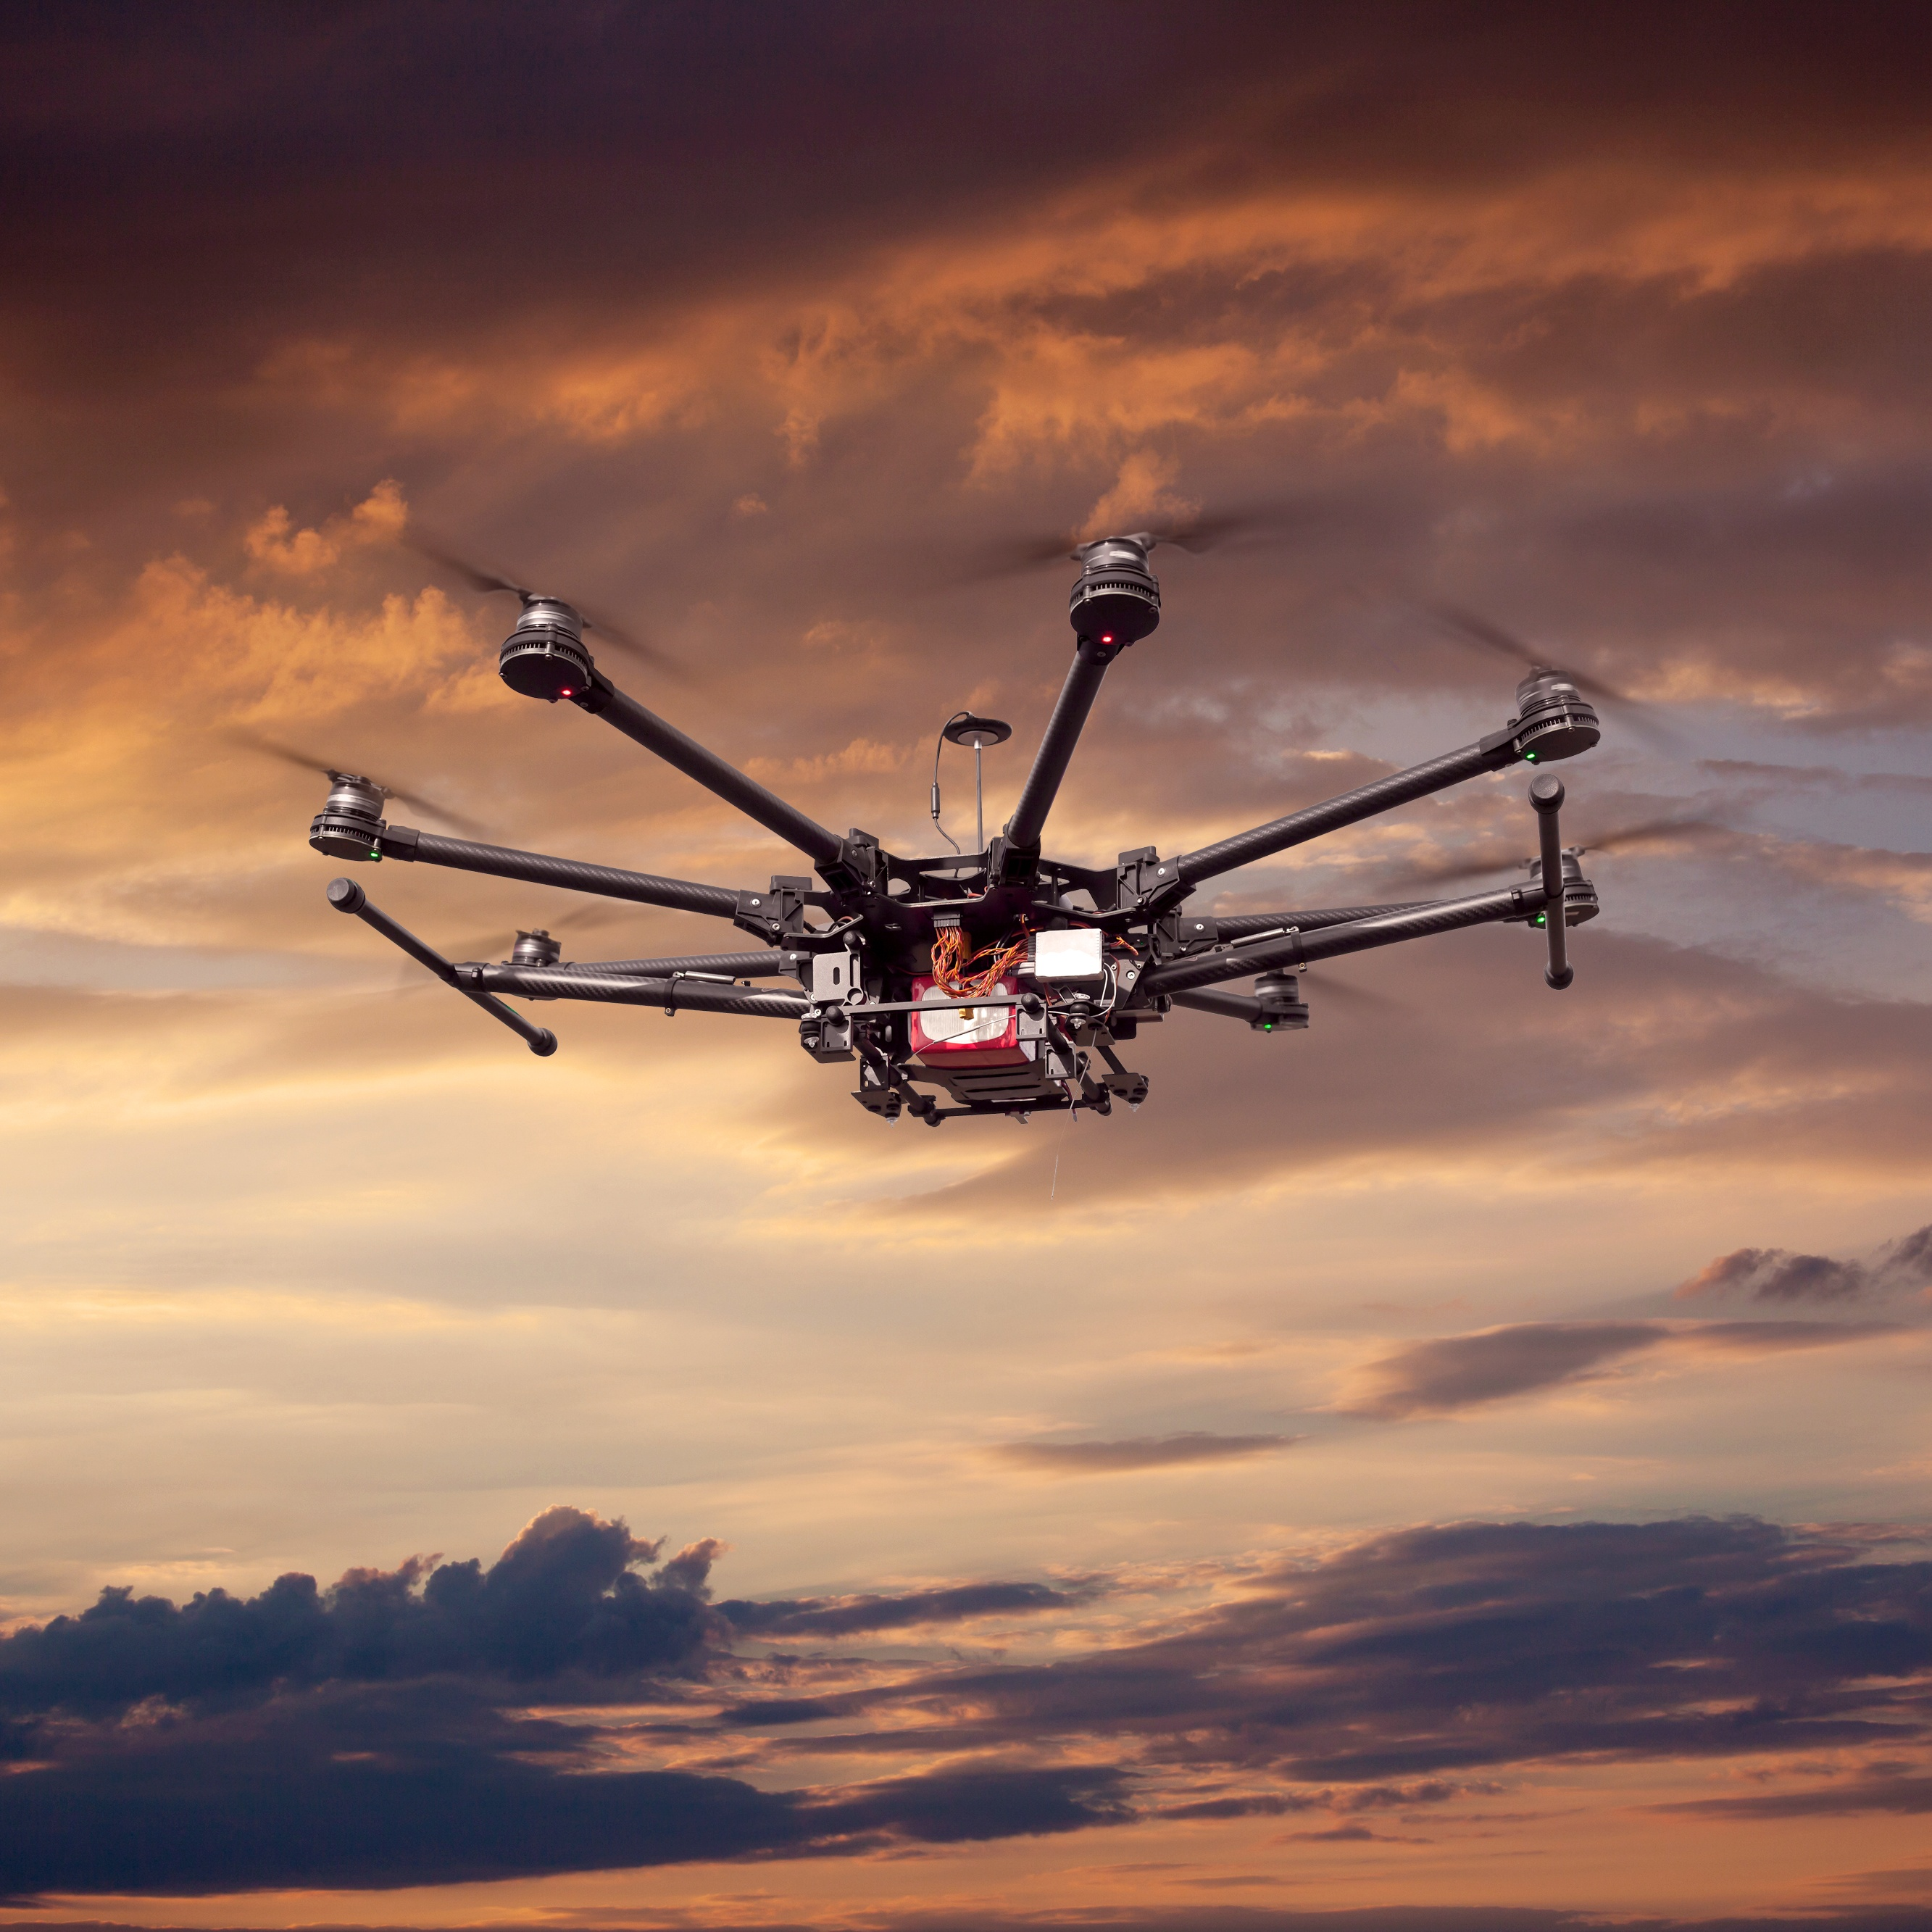 Drone-sunset-clouds.jpg